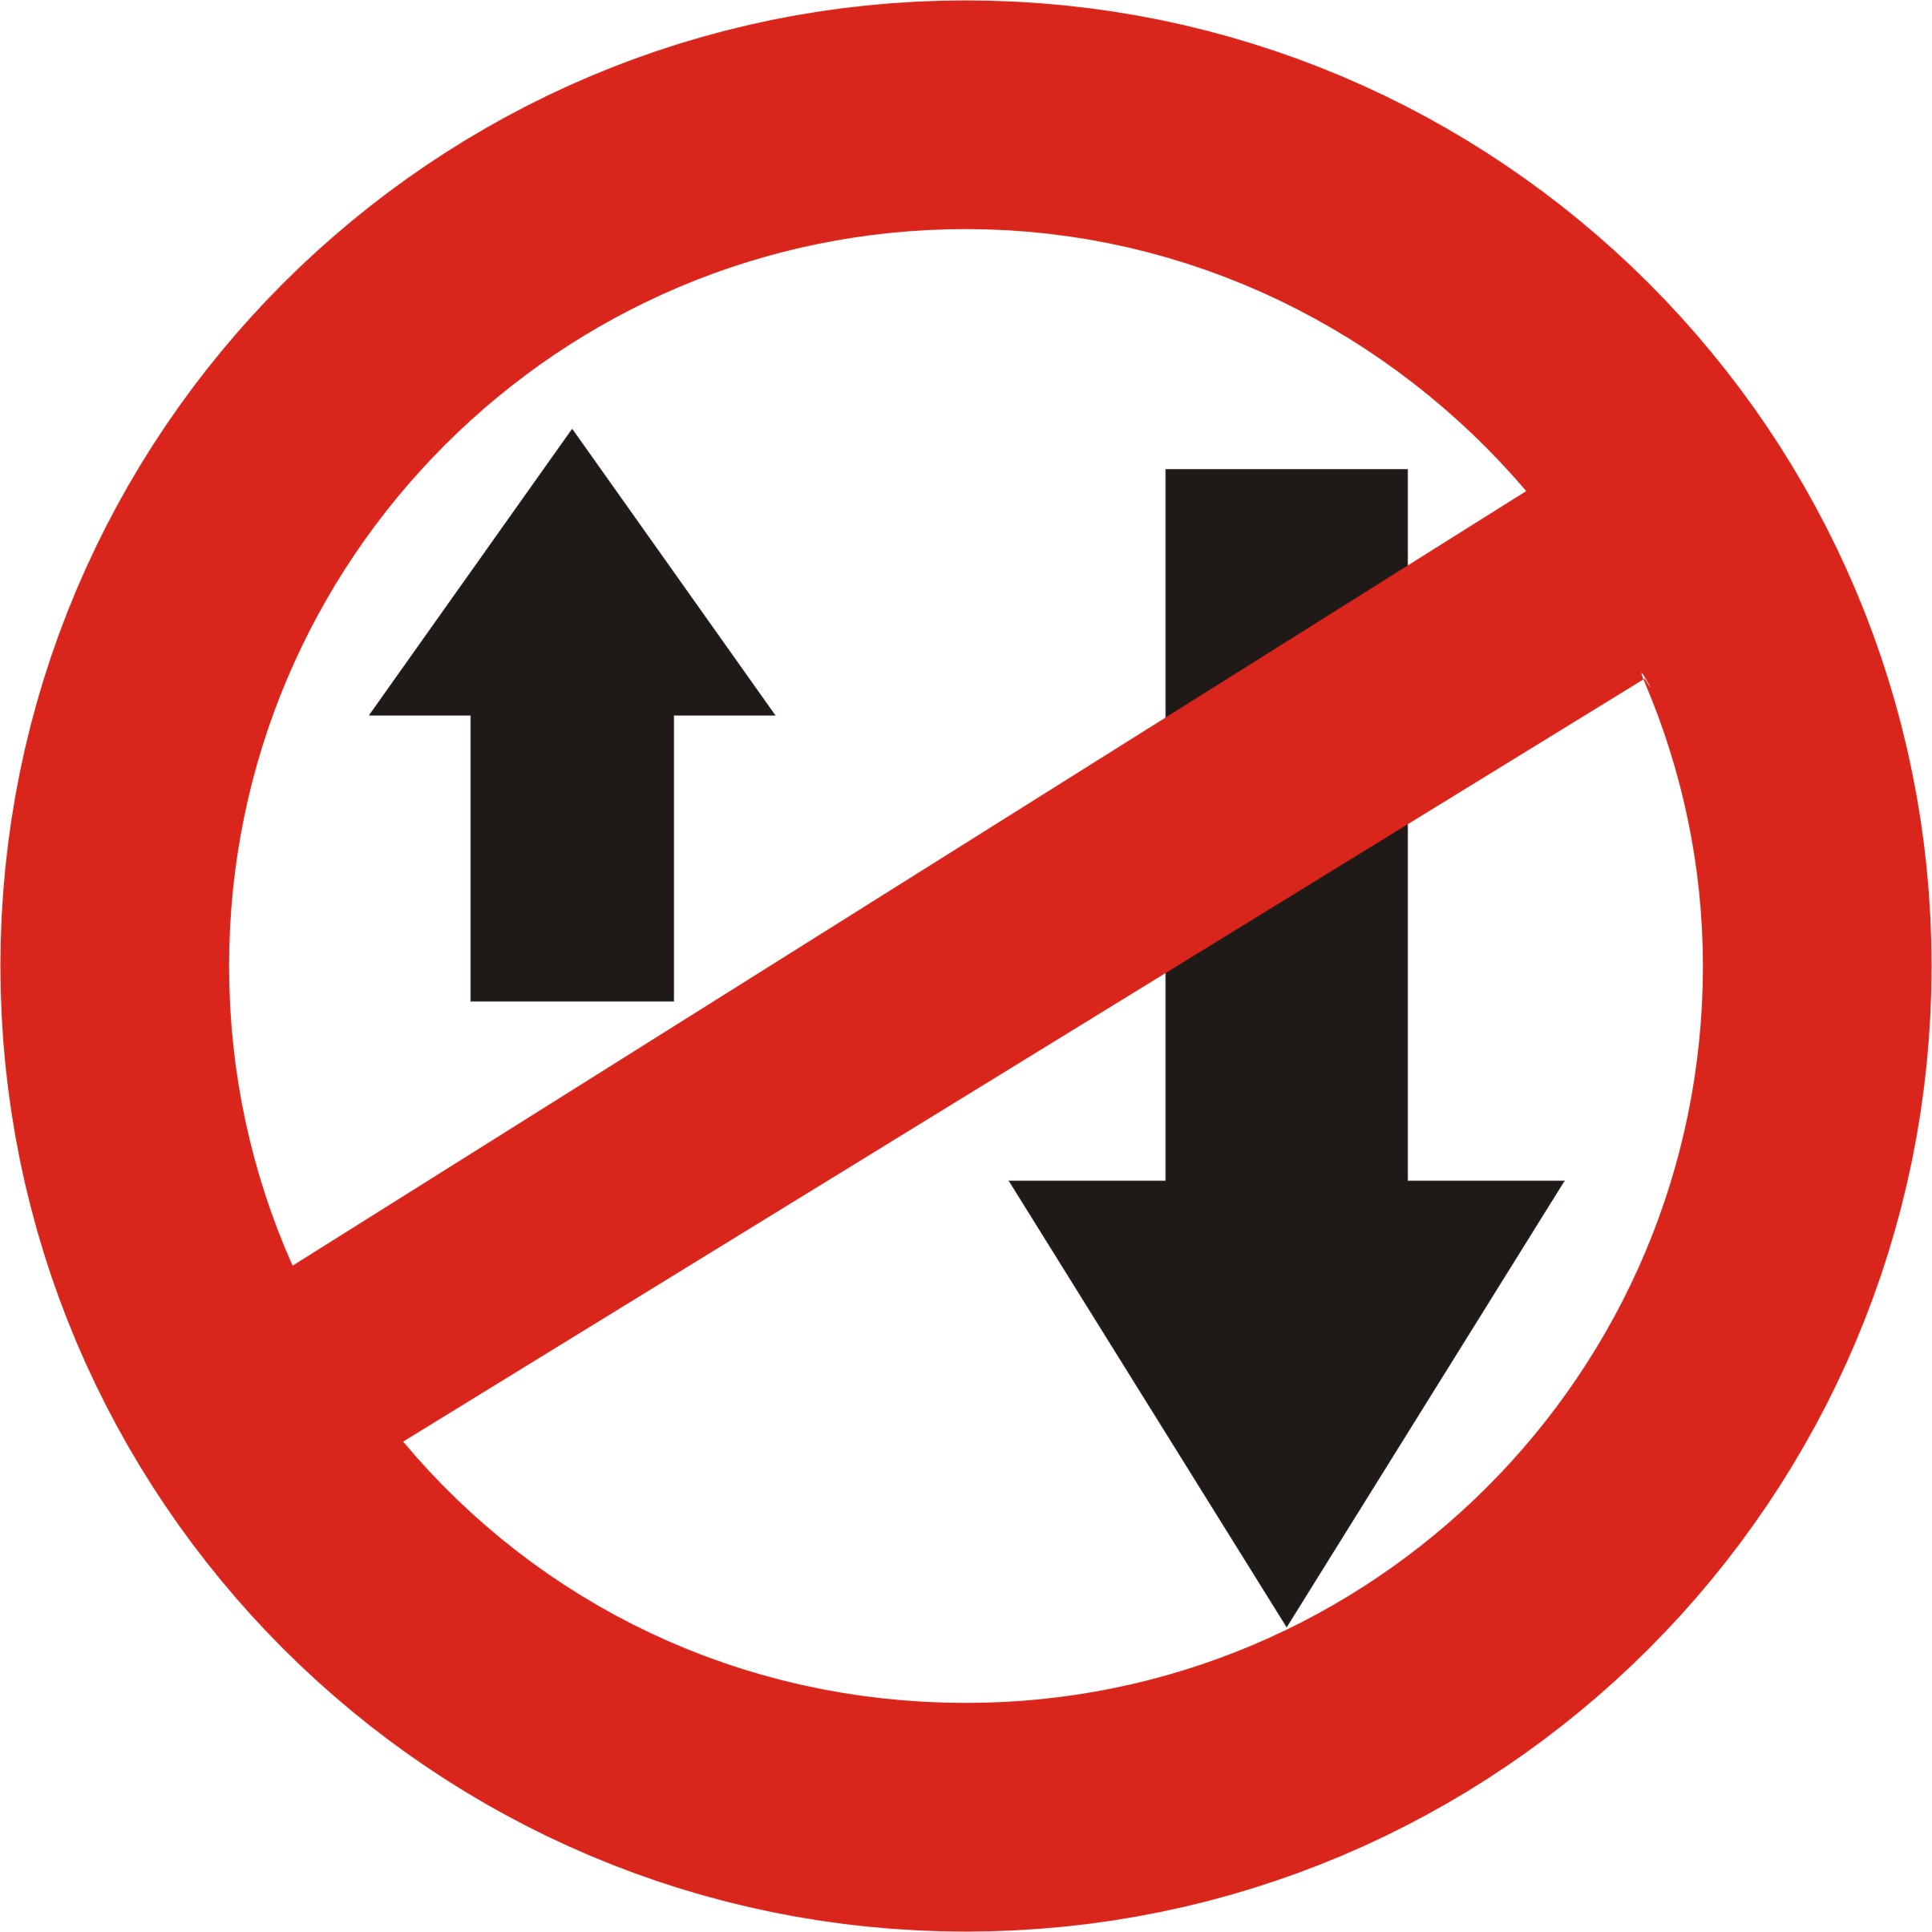 File:Road Sign No Entry Right.jpg